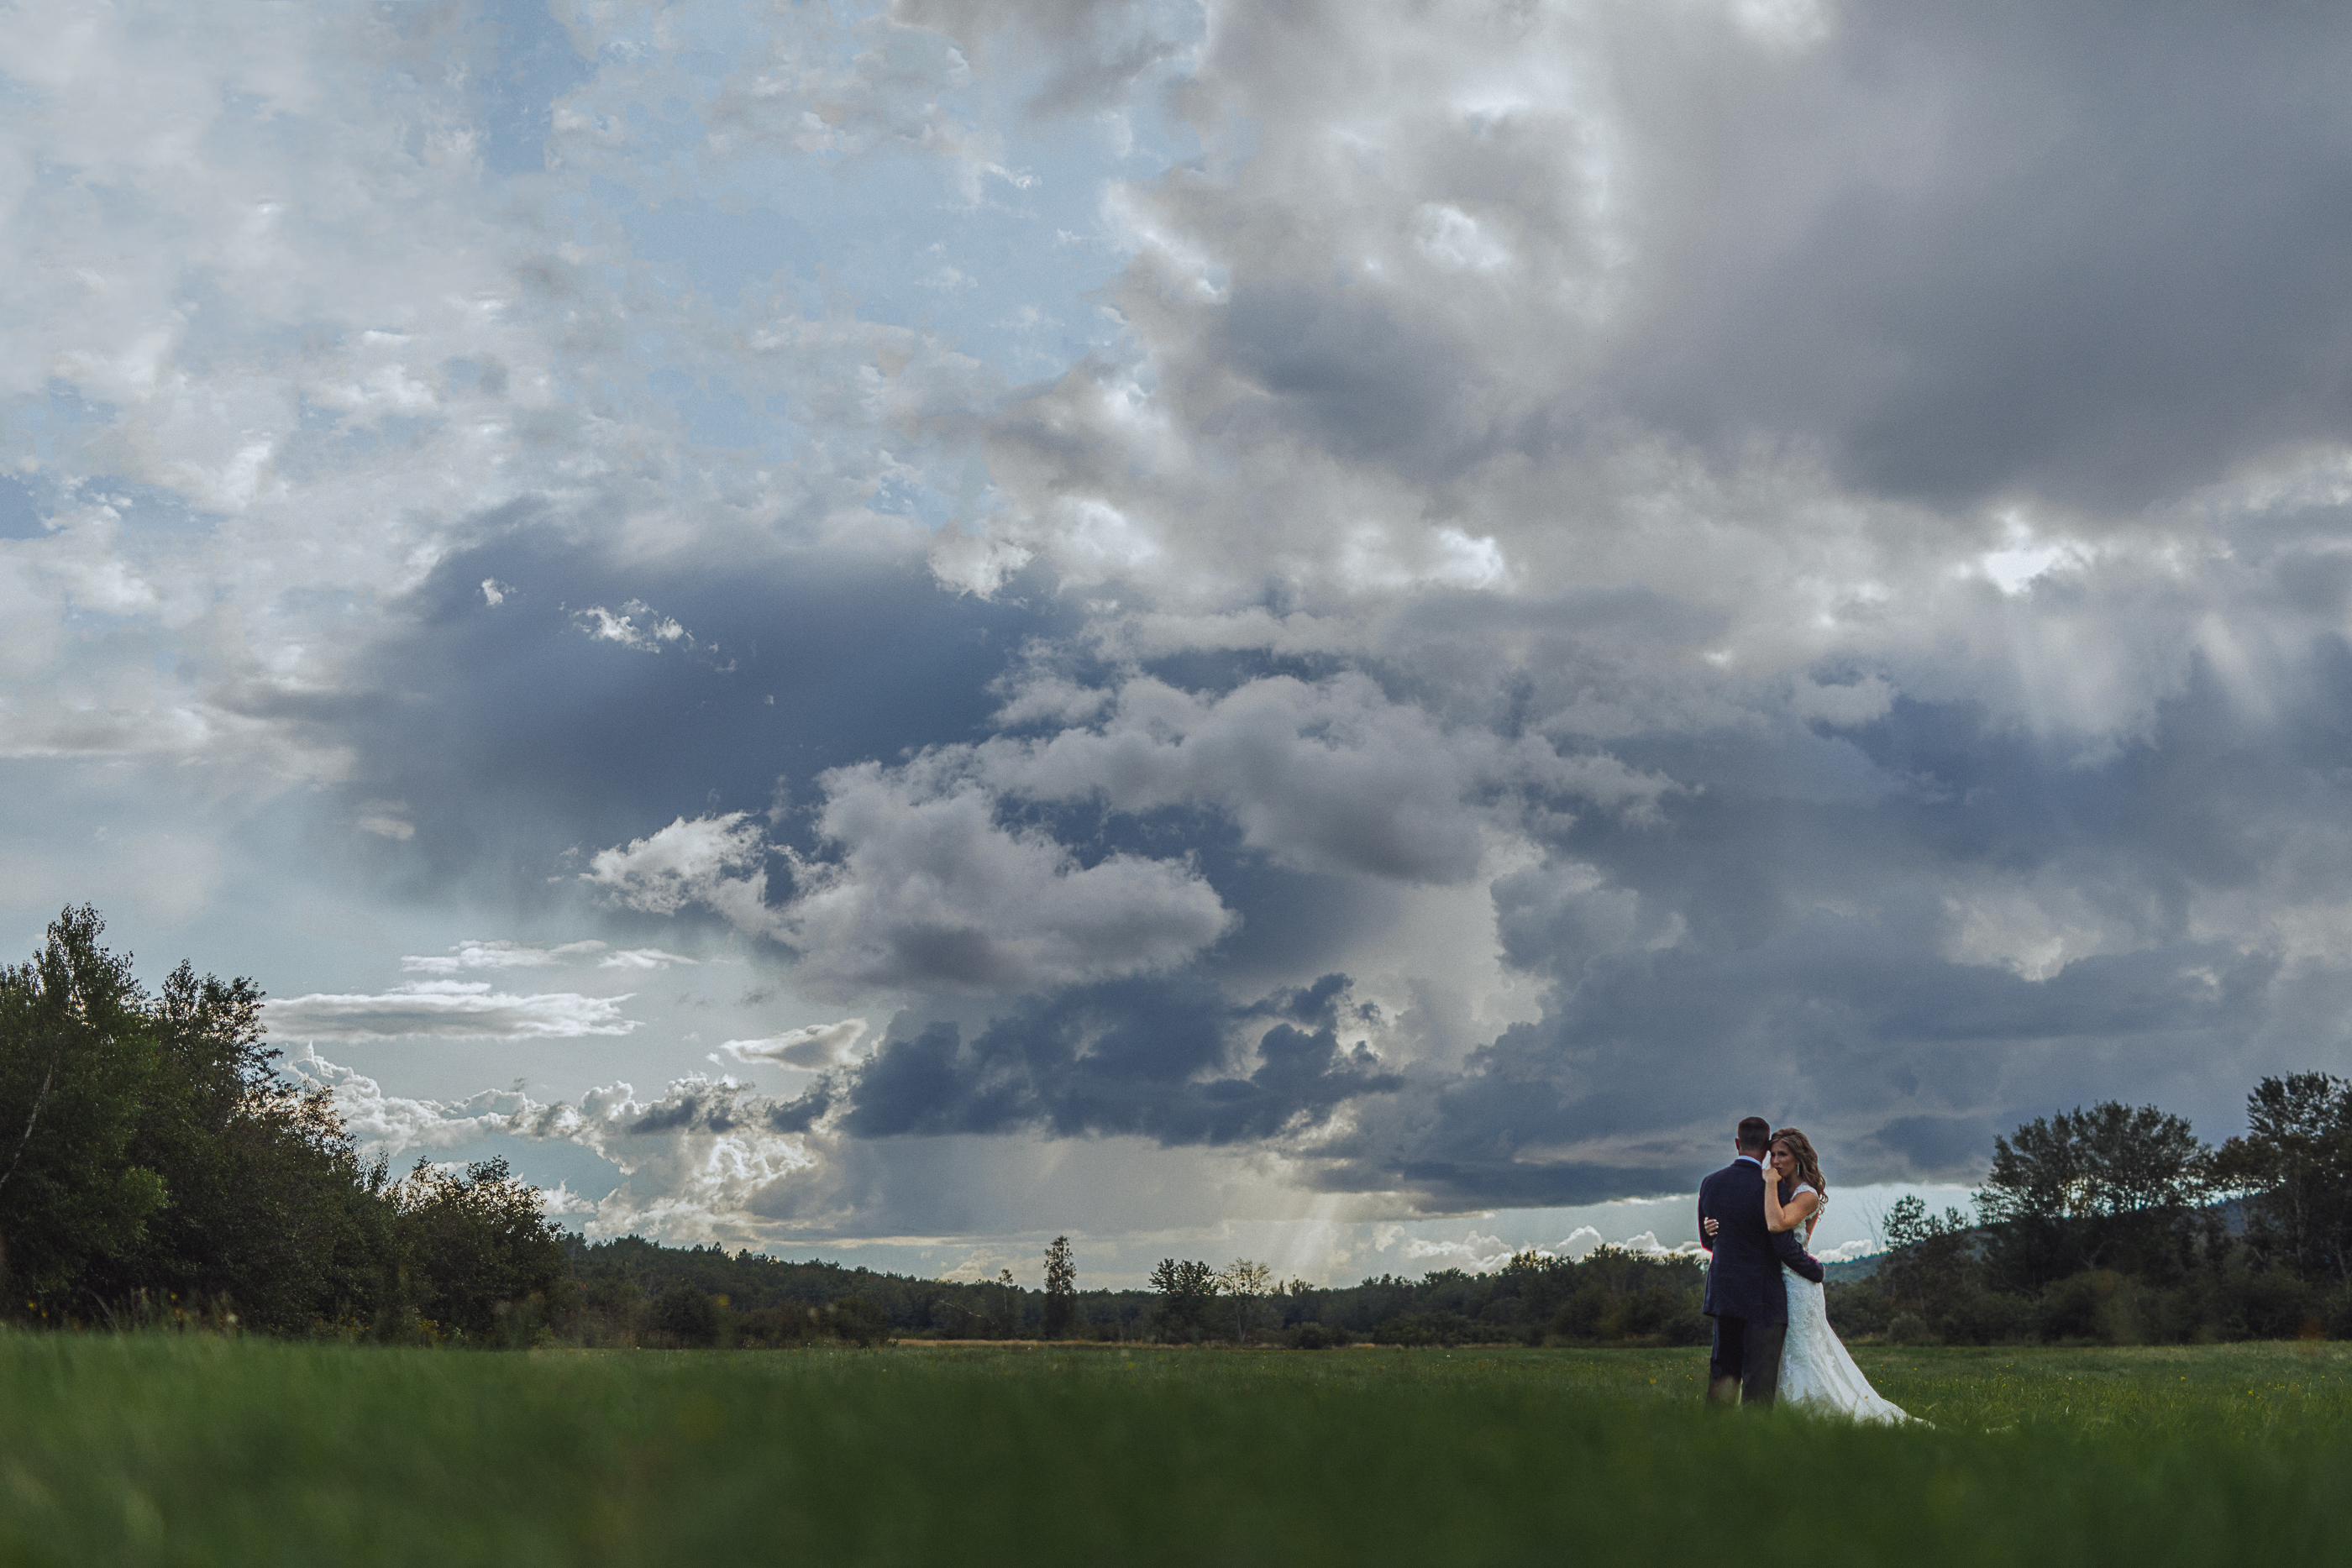 Wedding clouds